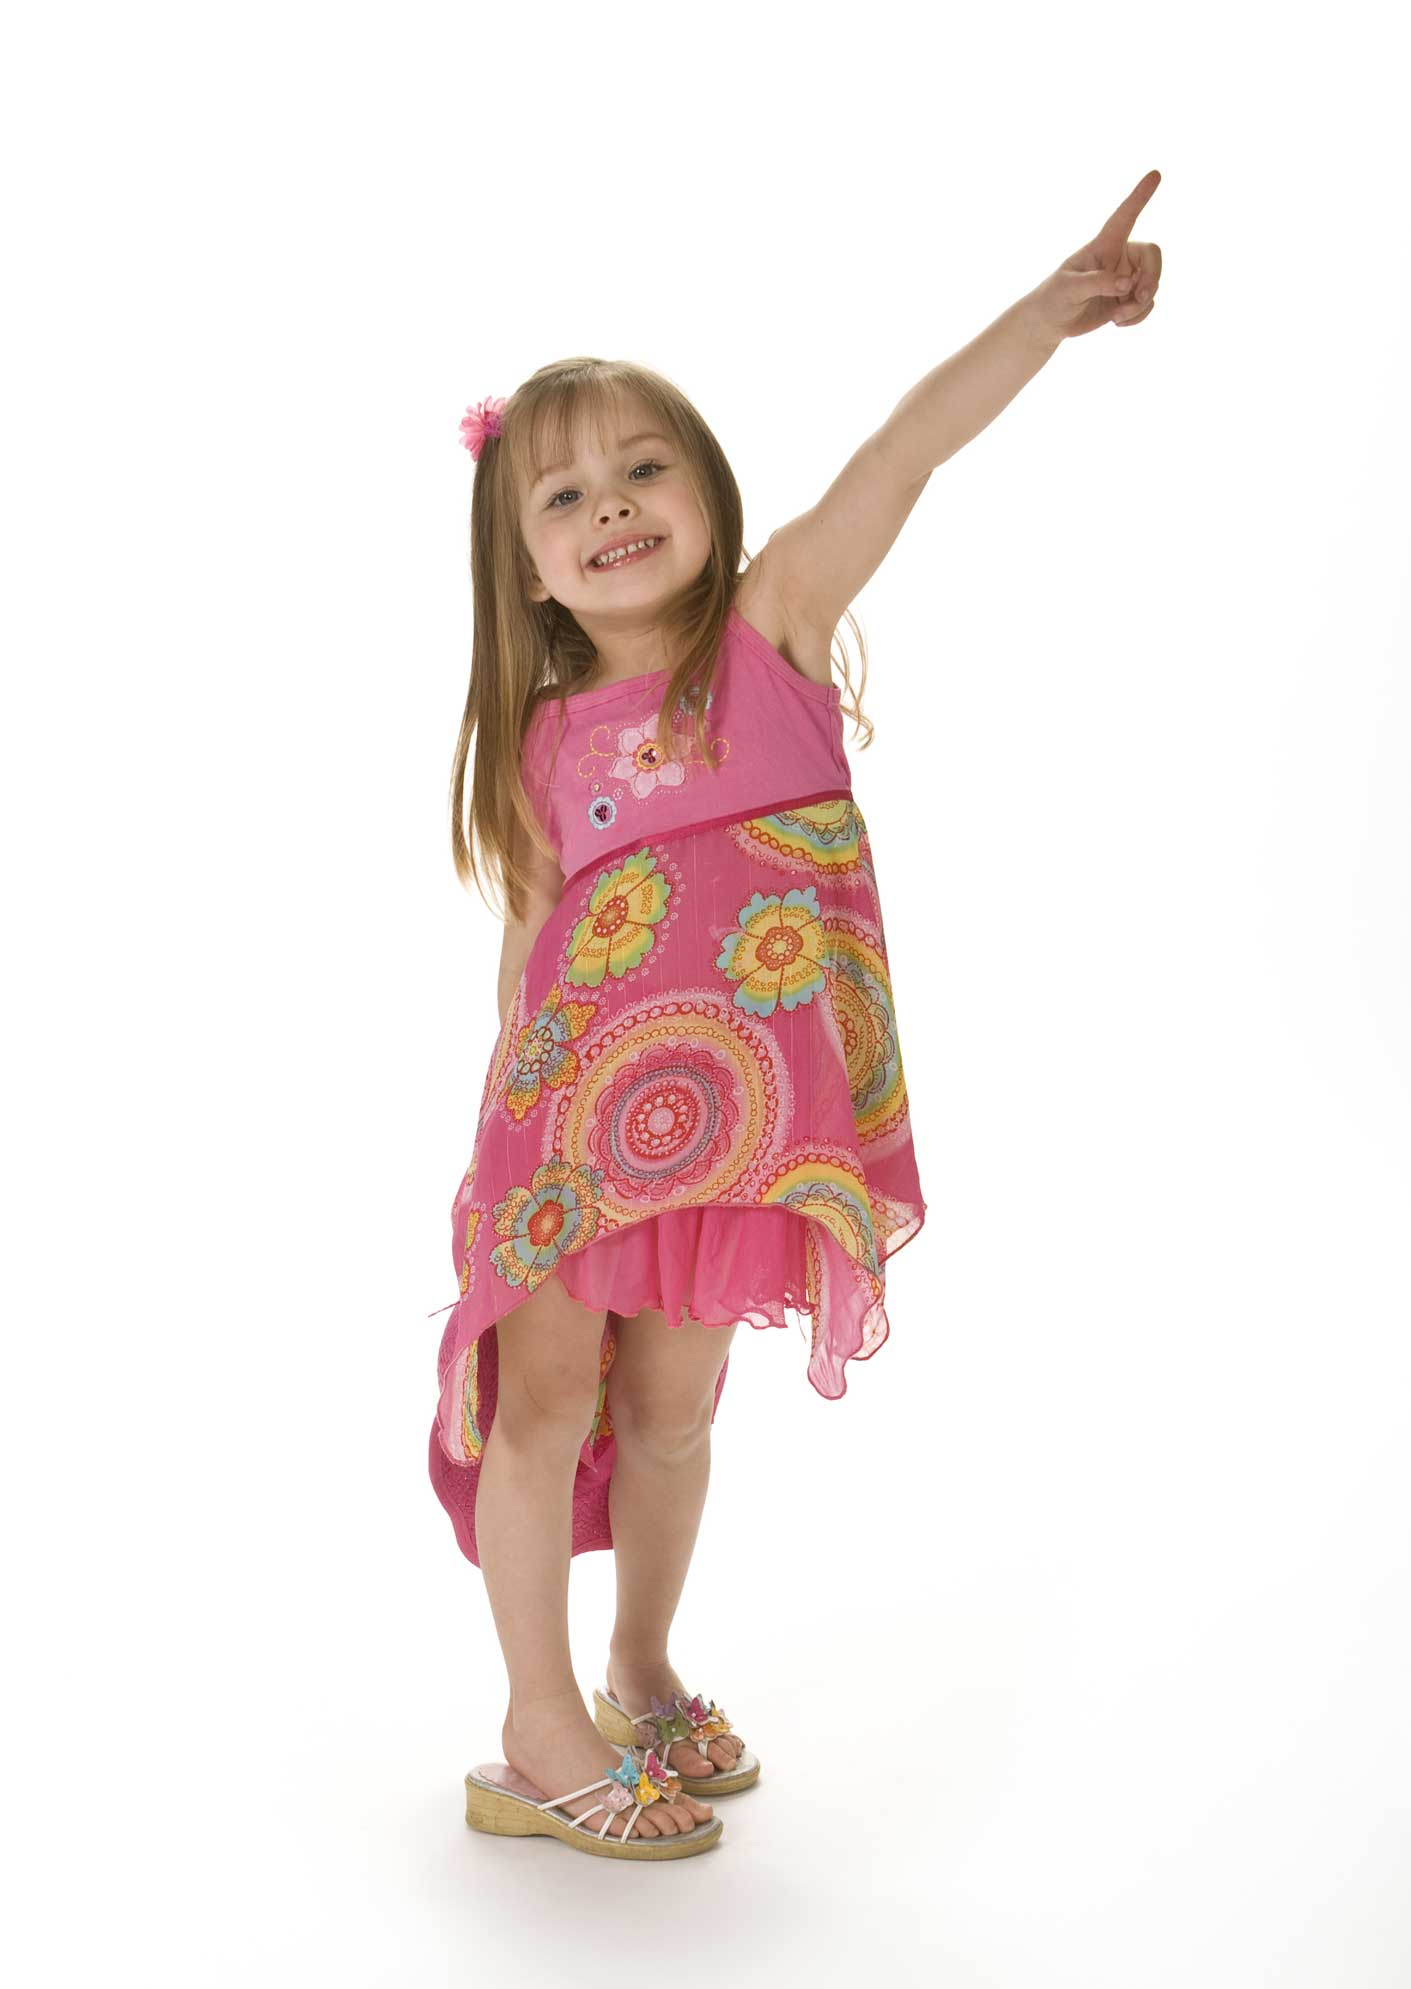 Four-Year-Old-Girl-Pointing